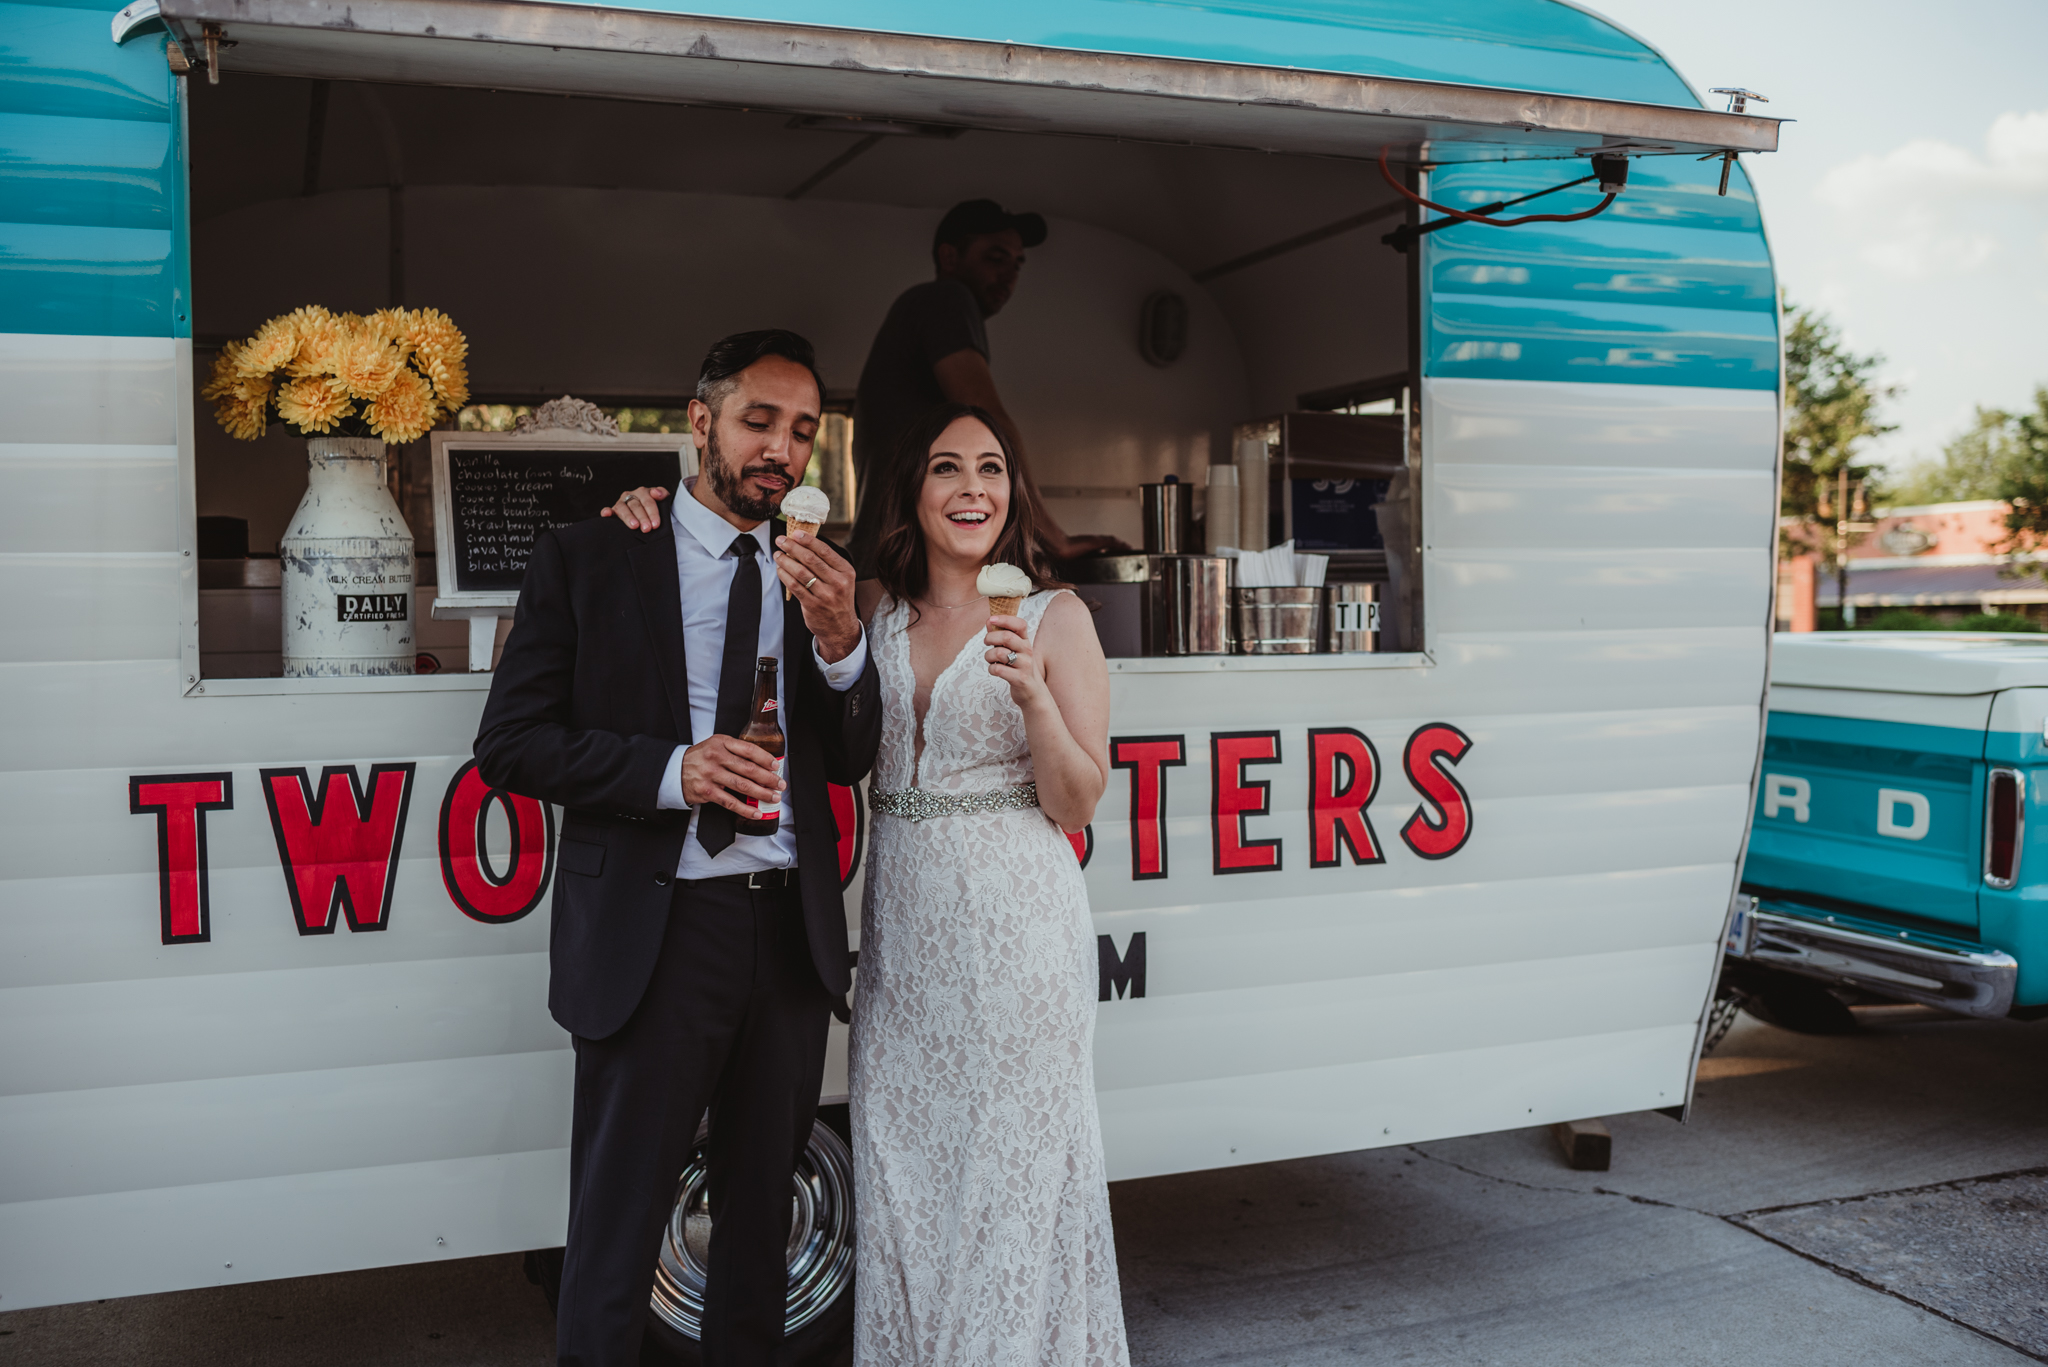 Raleigh-wedding-photographer-bride-and-groom-enjoying-two-roosters-ice-cream-rose-trail-images.jpg